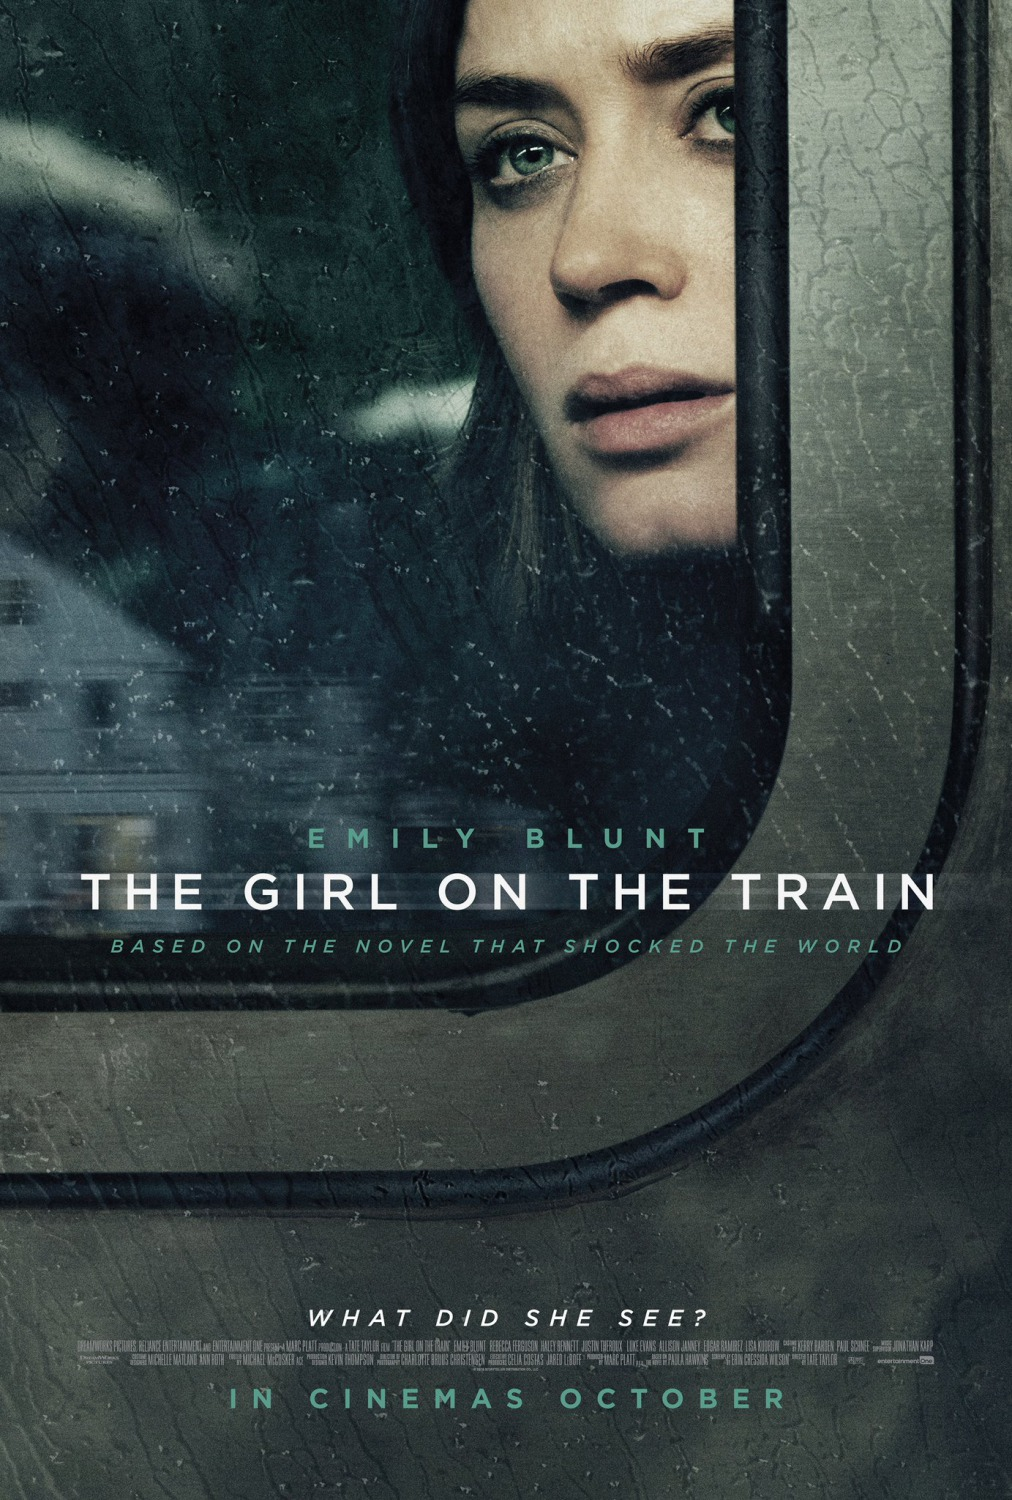 1-girl-on-the-train